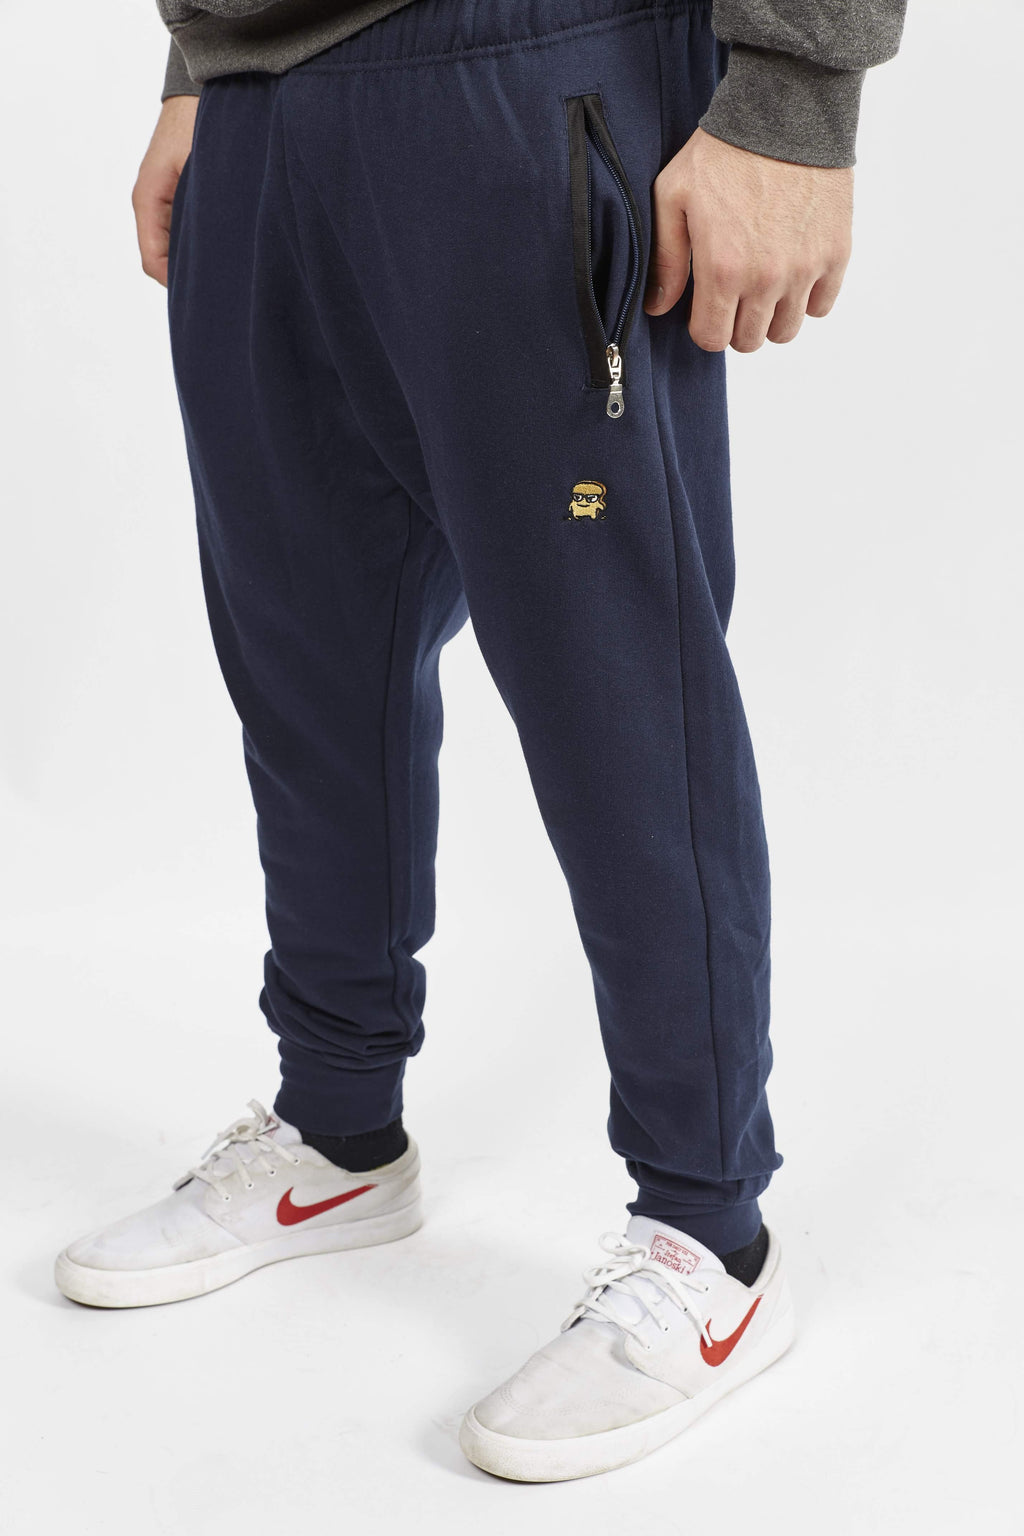 DARK BLUE CHOAST SWEATPANTS